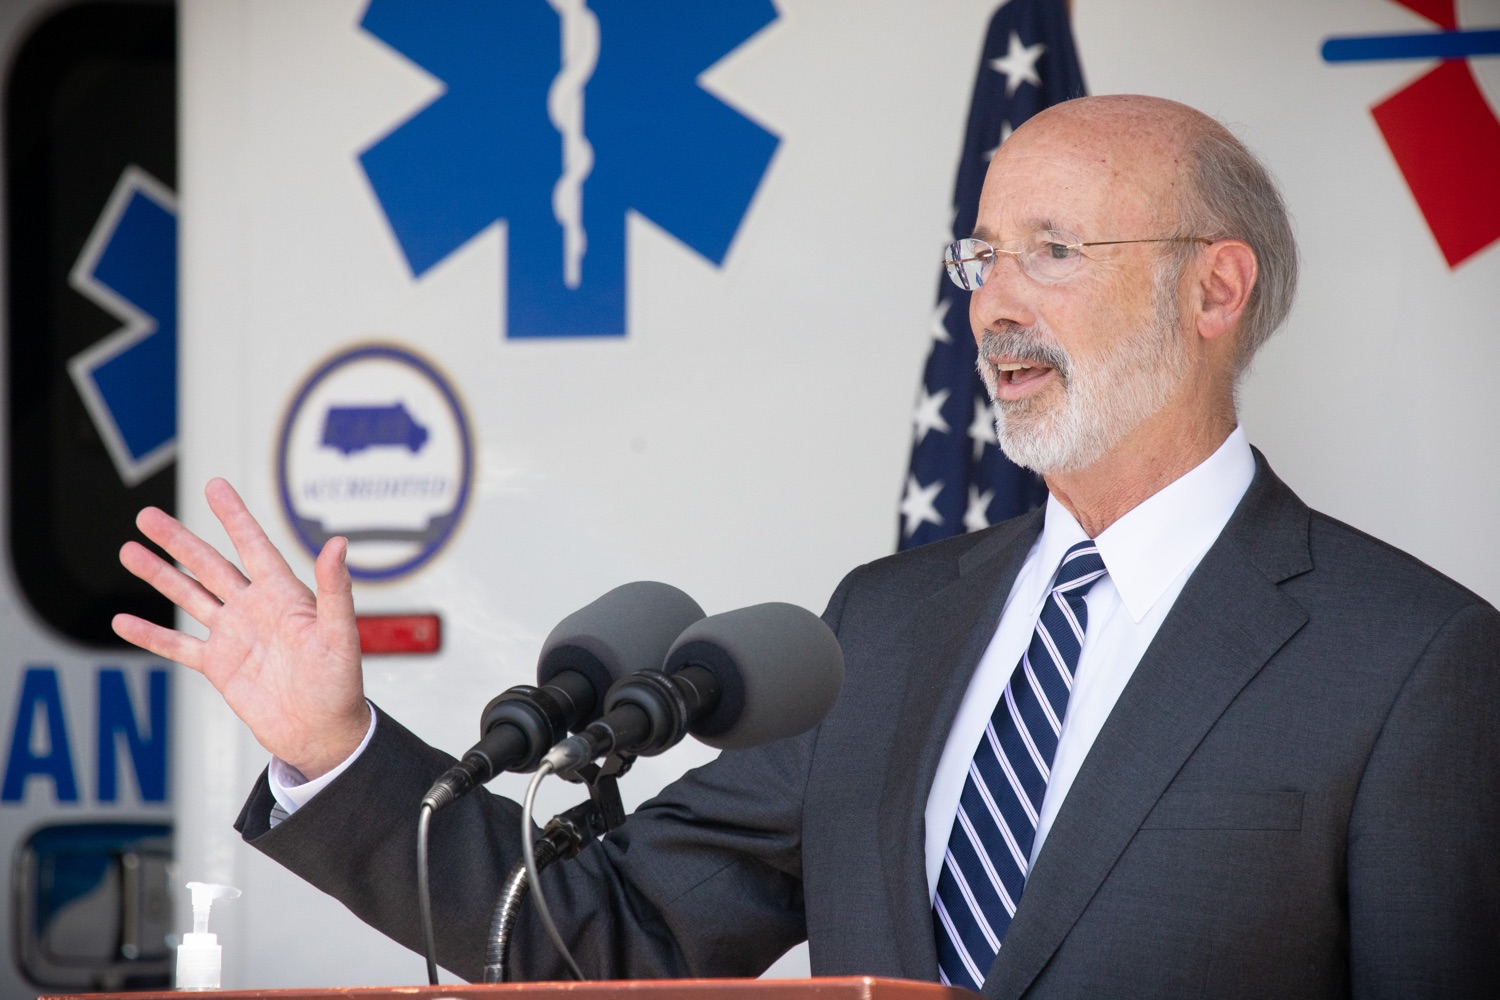 "<a href=""https://filesource.wostreaming.net/commonwealthofpa/photo/18180_gov_first_responders_dz_021.jpg"" target=""_blank"">⇣ Download Photo<br></a>Pennsylvania Governor Tom Wolf speaking to the press. Governor Tom Wolf visited the Millersville location of Lancaster EMS today to thank first responders and learn about how they are adapting their critical work during the states response to the COVID-19 pandemic.  Millersville, PA  July 30, 2020"